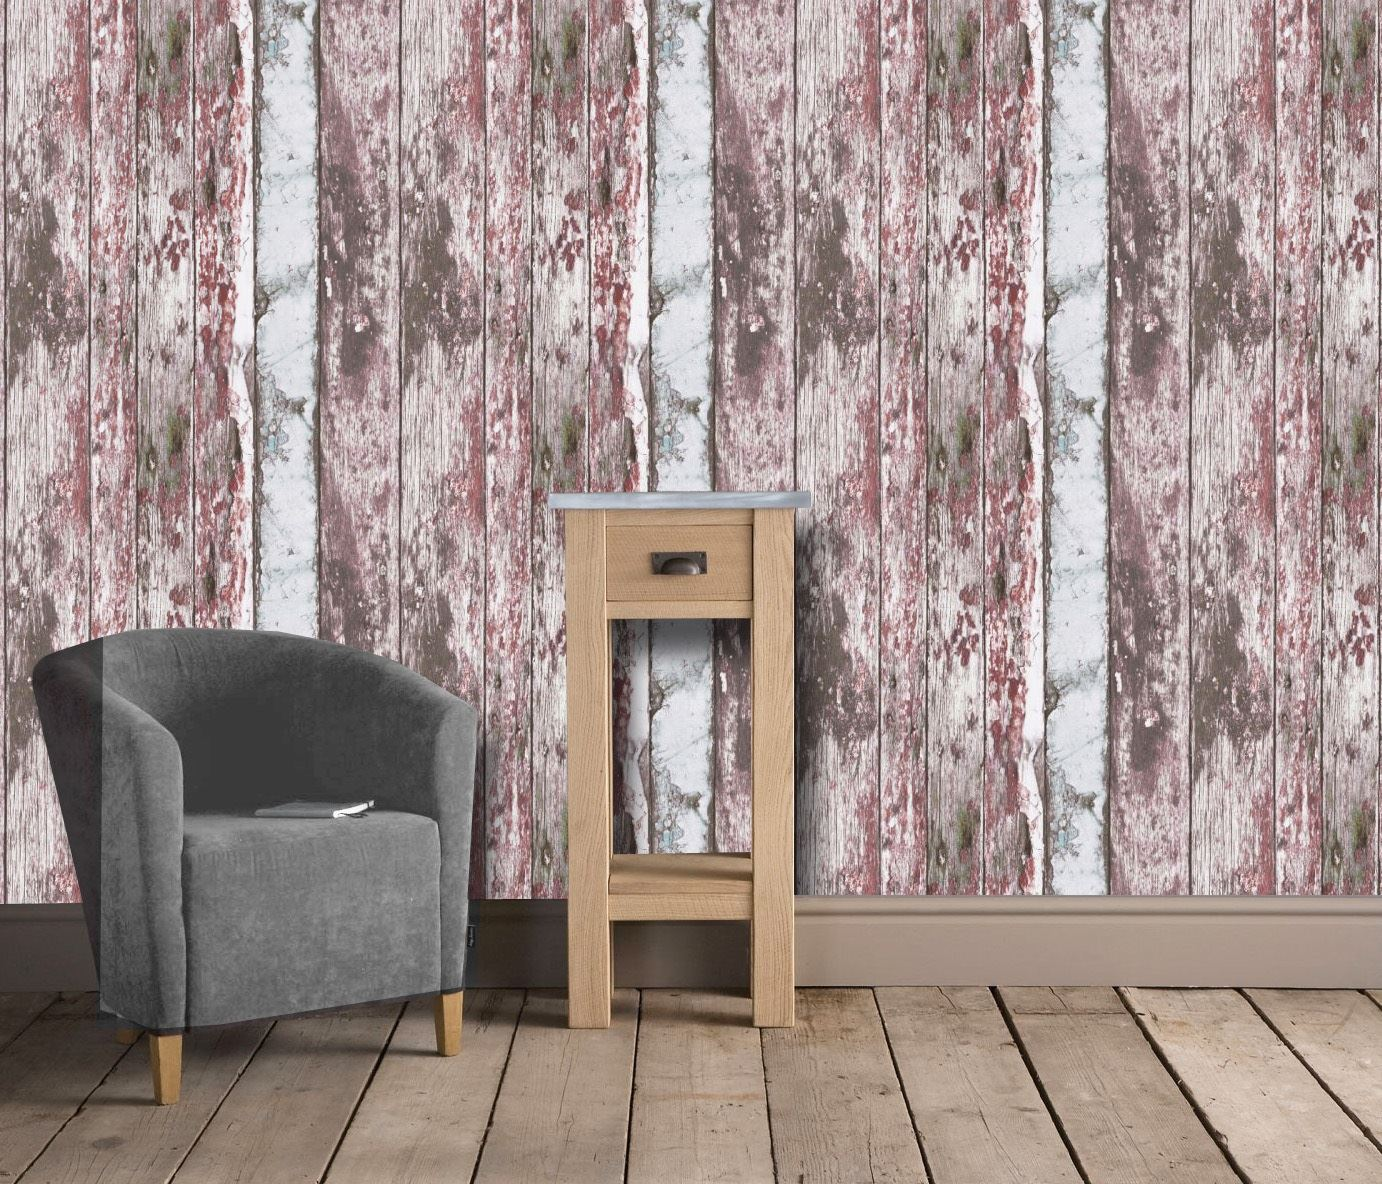 Painted-Rustic-Wood-Wallpaper-Distressed-Red-White-Textured-Vinyl-3-x-Rolls thumbnail 3